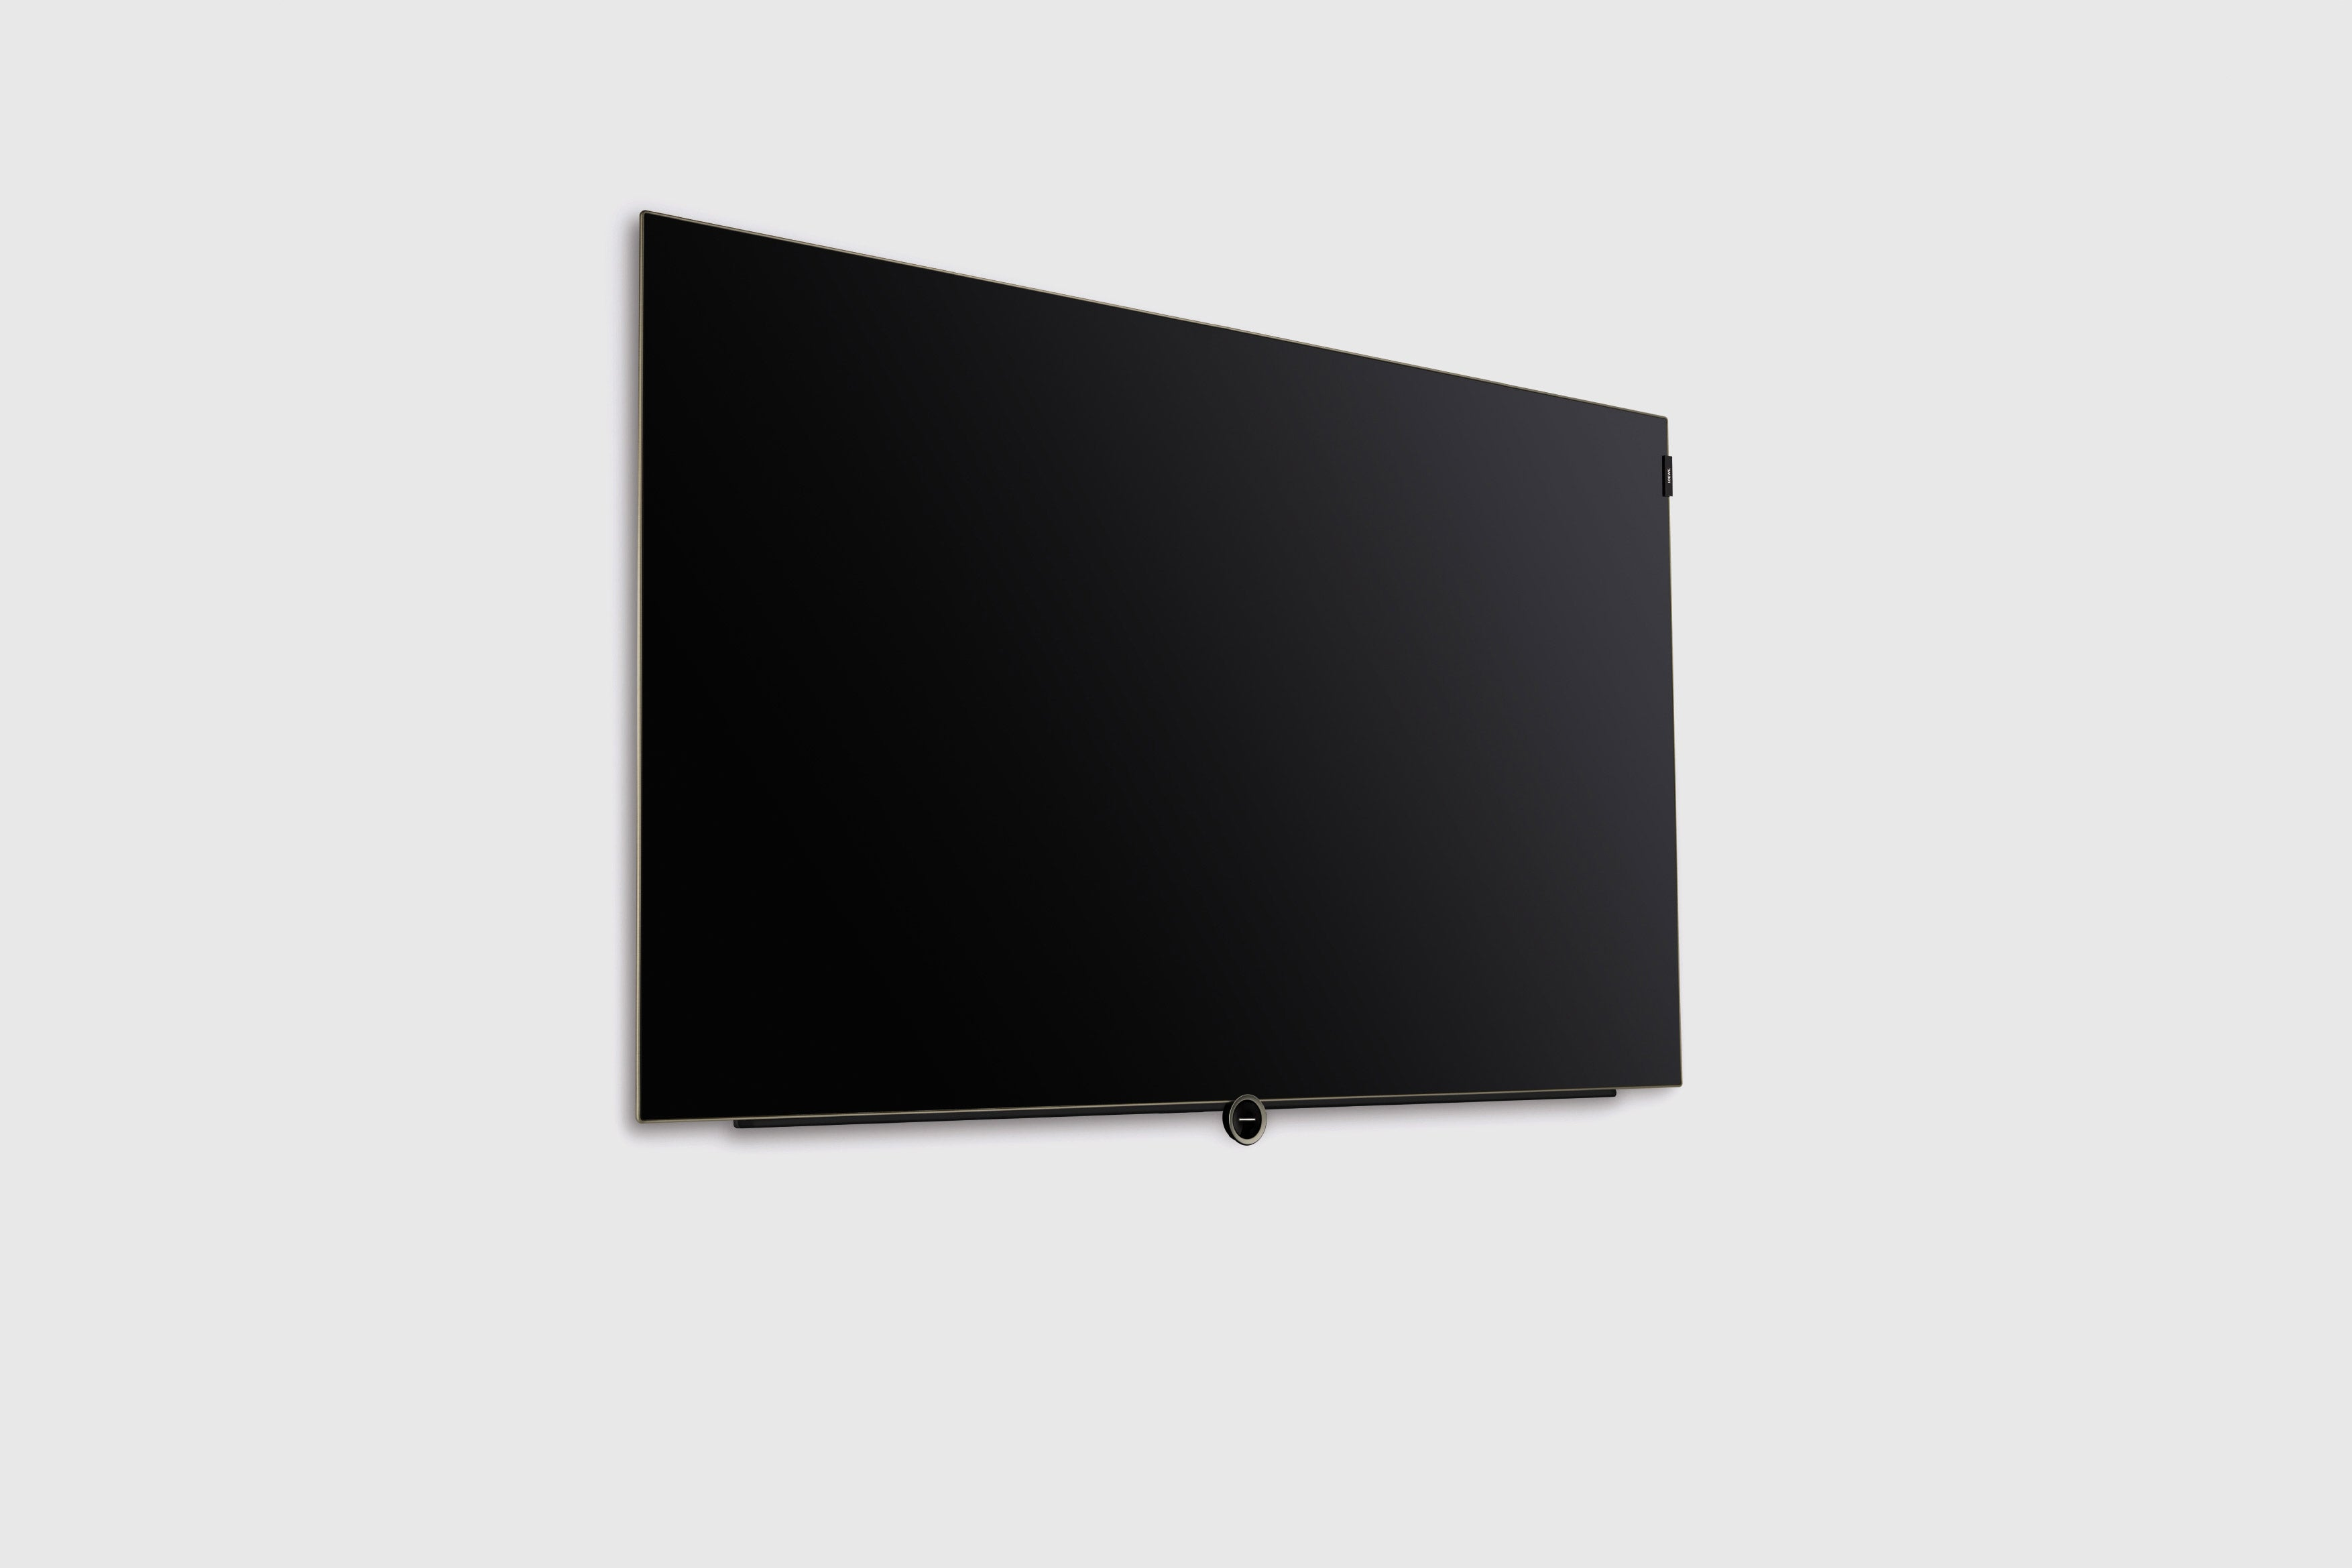 Loewe bild 5 OLED Television Wall Mounted Black Oak Technology design by Bodo Sperlein Studio